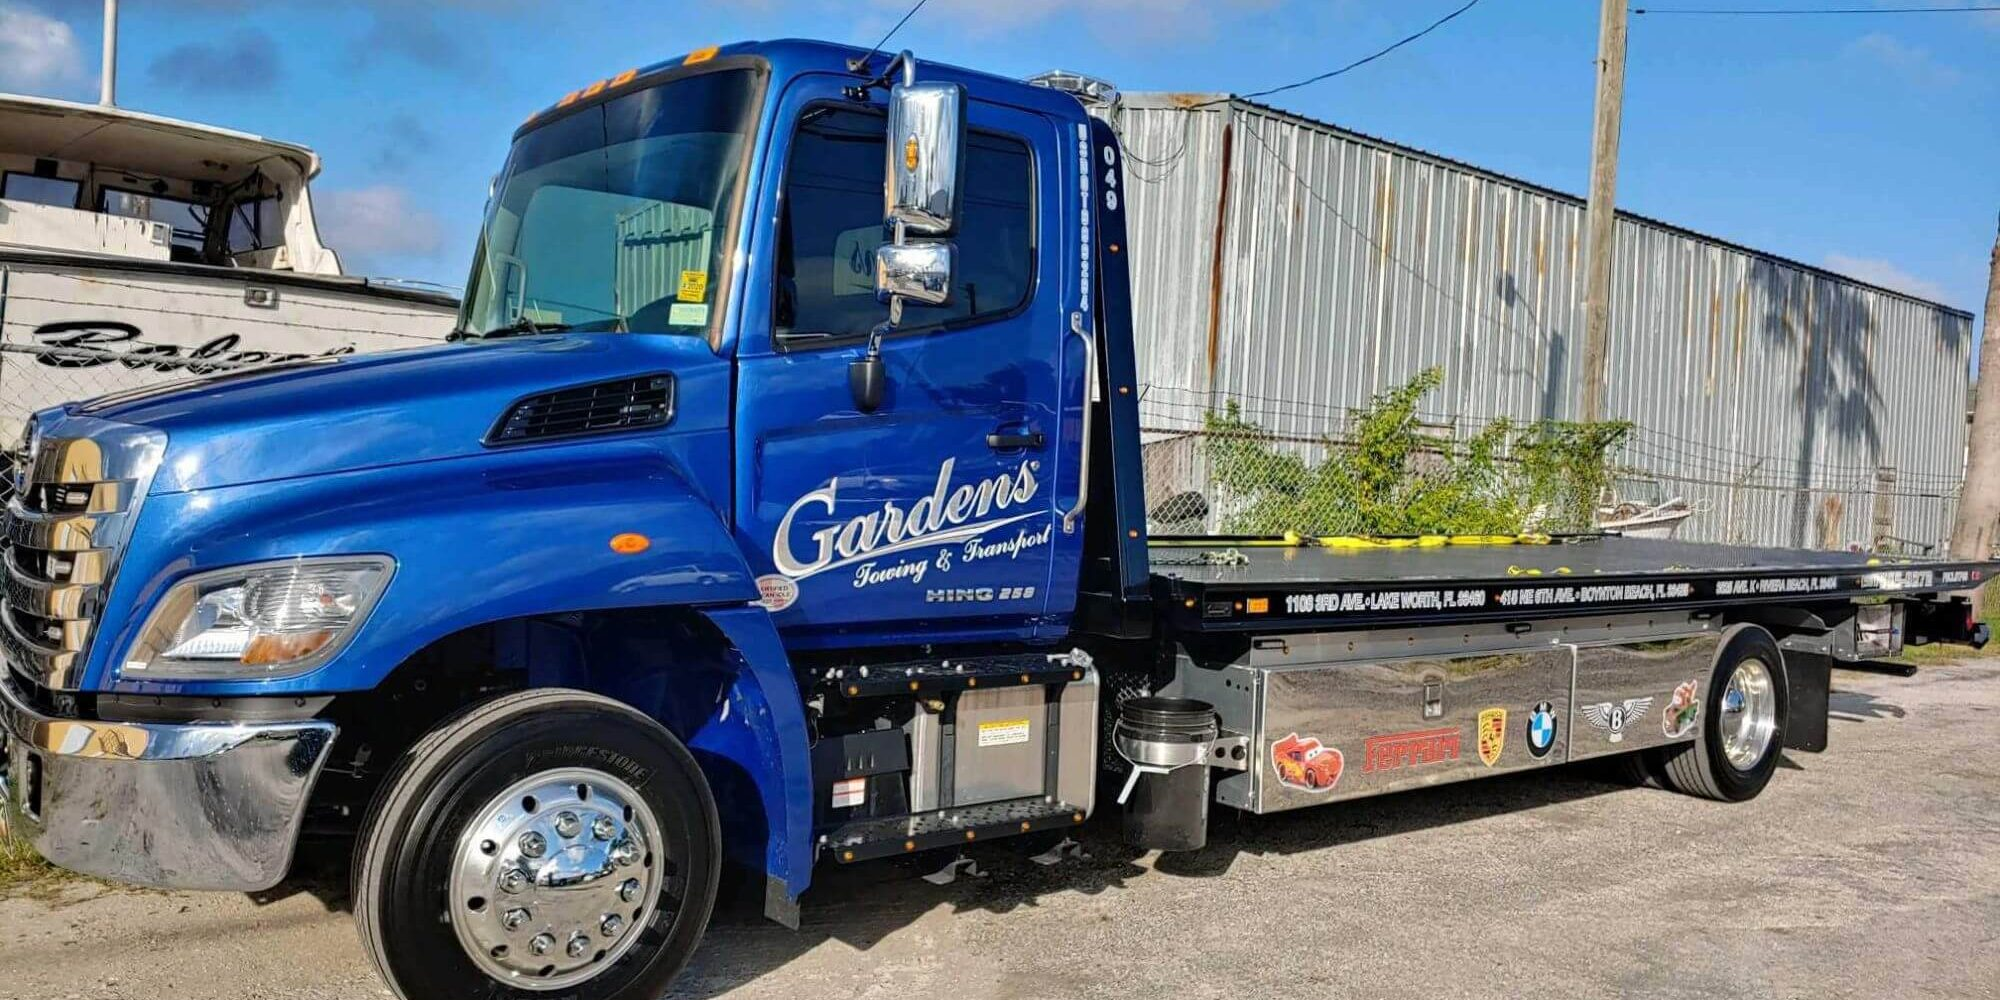 Gardens Towing (26)